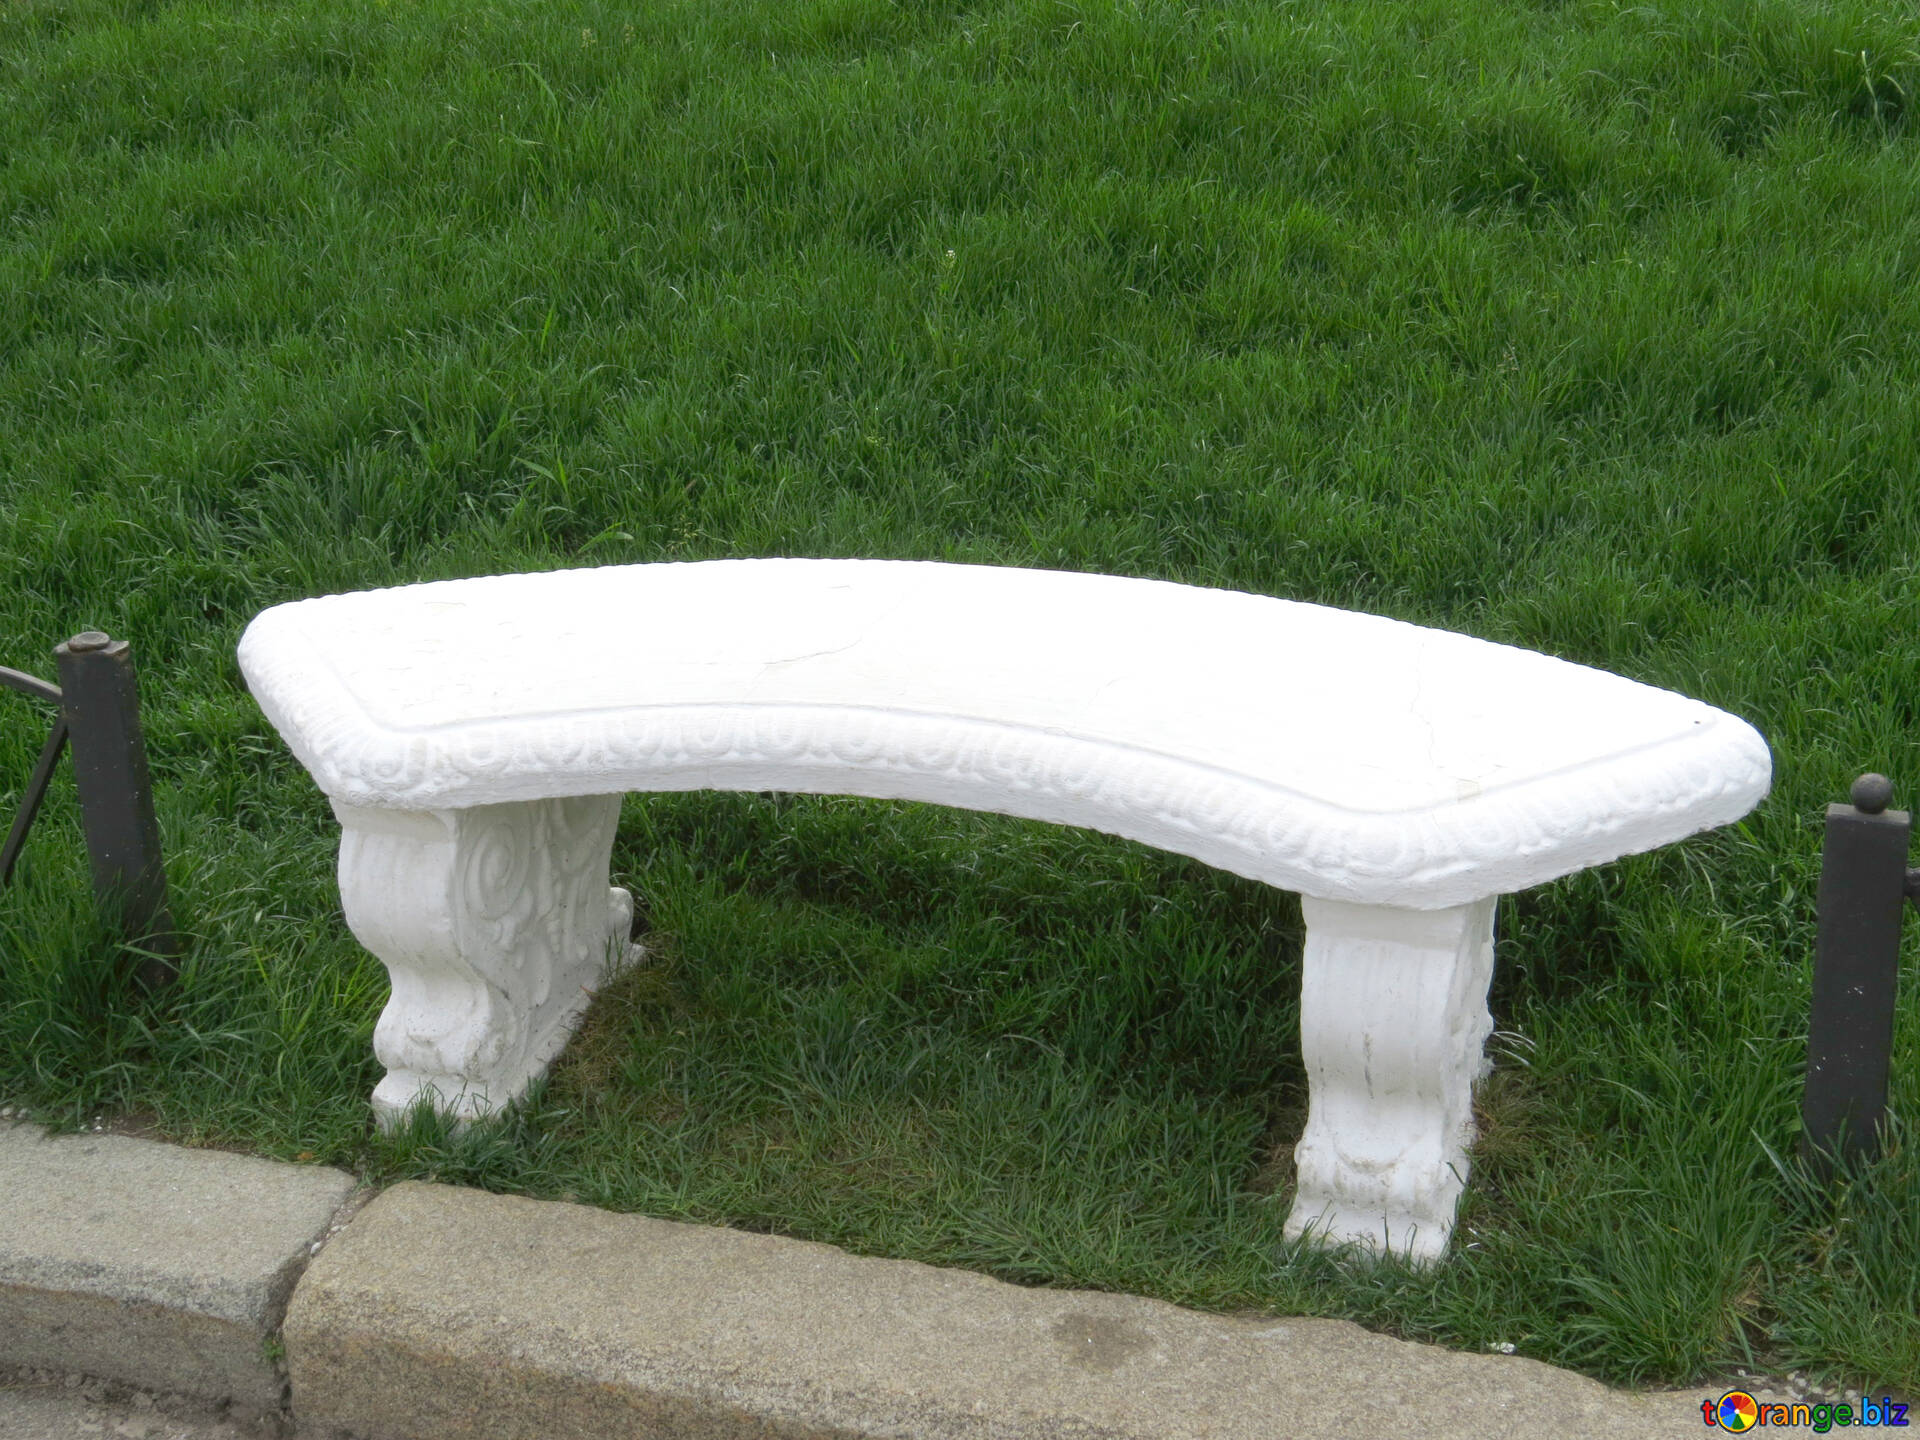 Astounding Garden Furniture Stone Bench In The Park Furniture 31227 Ibusinesslaw Wood Chair Design Ideas Ibusinesslaworg